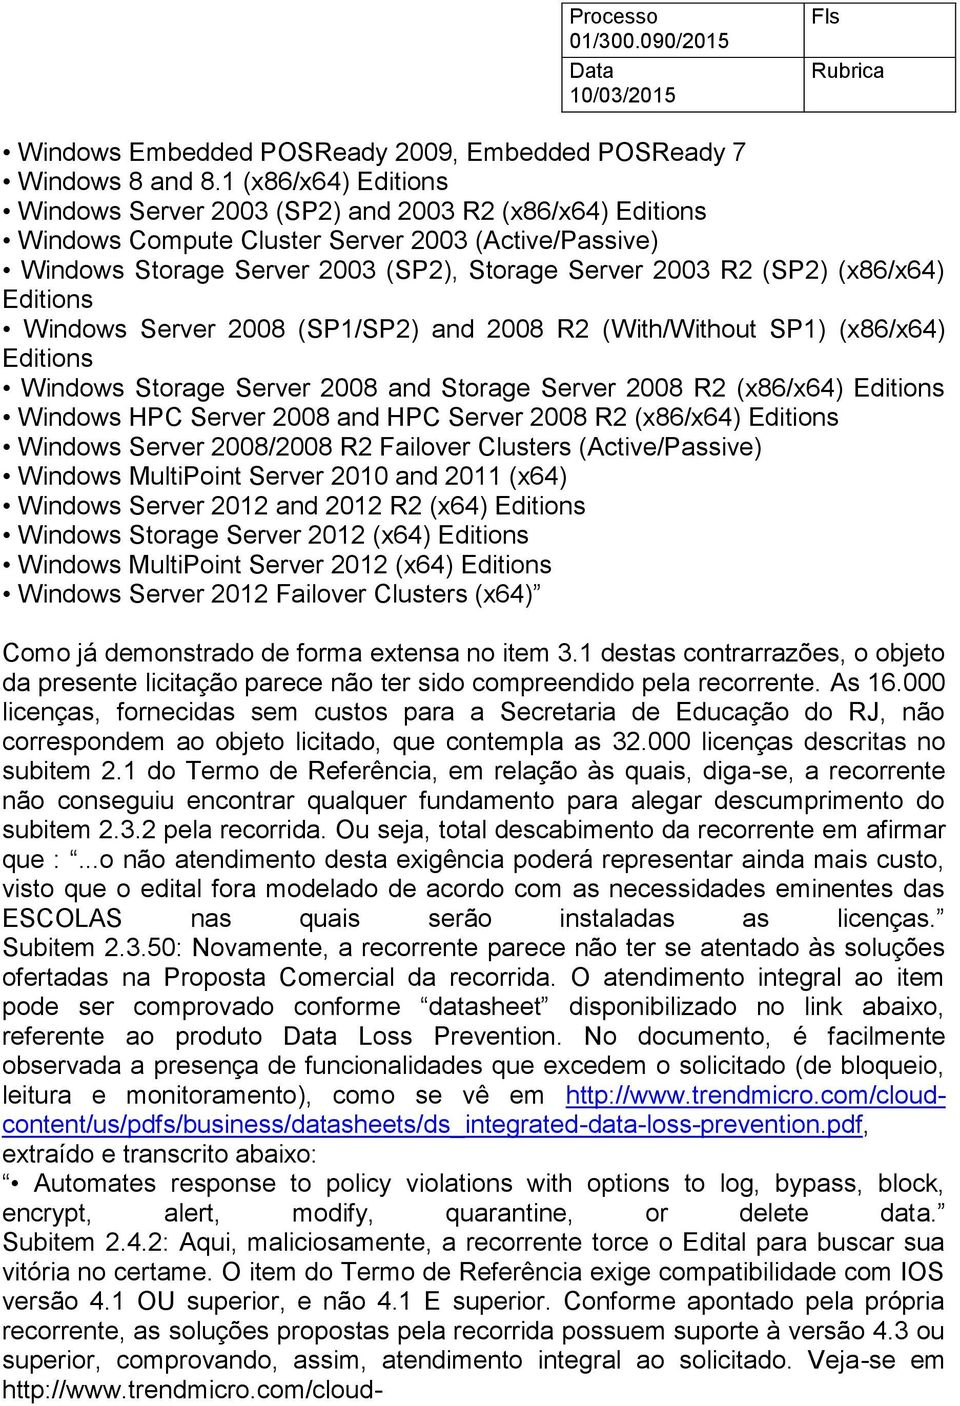 (x86/x64) Editions Windows Server 2008 (SP1/SP2) and 2008 R2 (With/Without SP1) (x86/x64) Editions Windows Storage Server 2008 and Storage Server 2008 R2 (x86/x64) Editions Windows HPC Server 2008